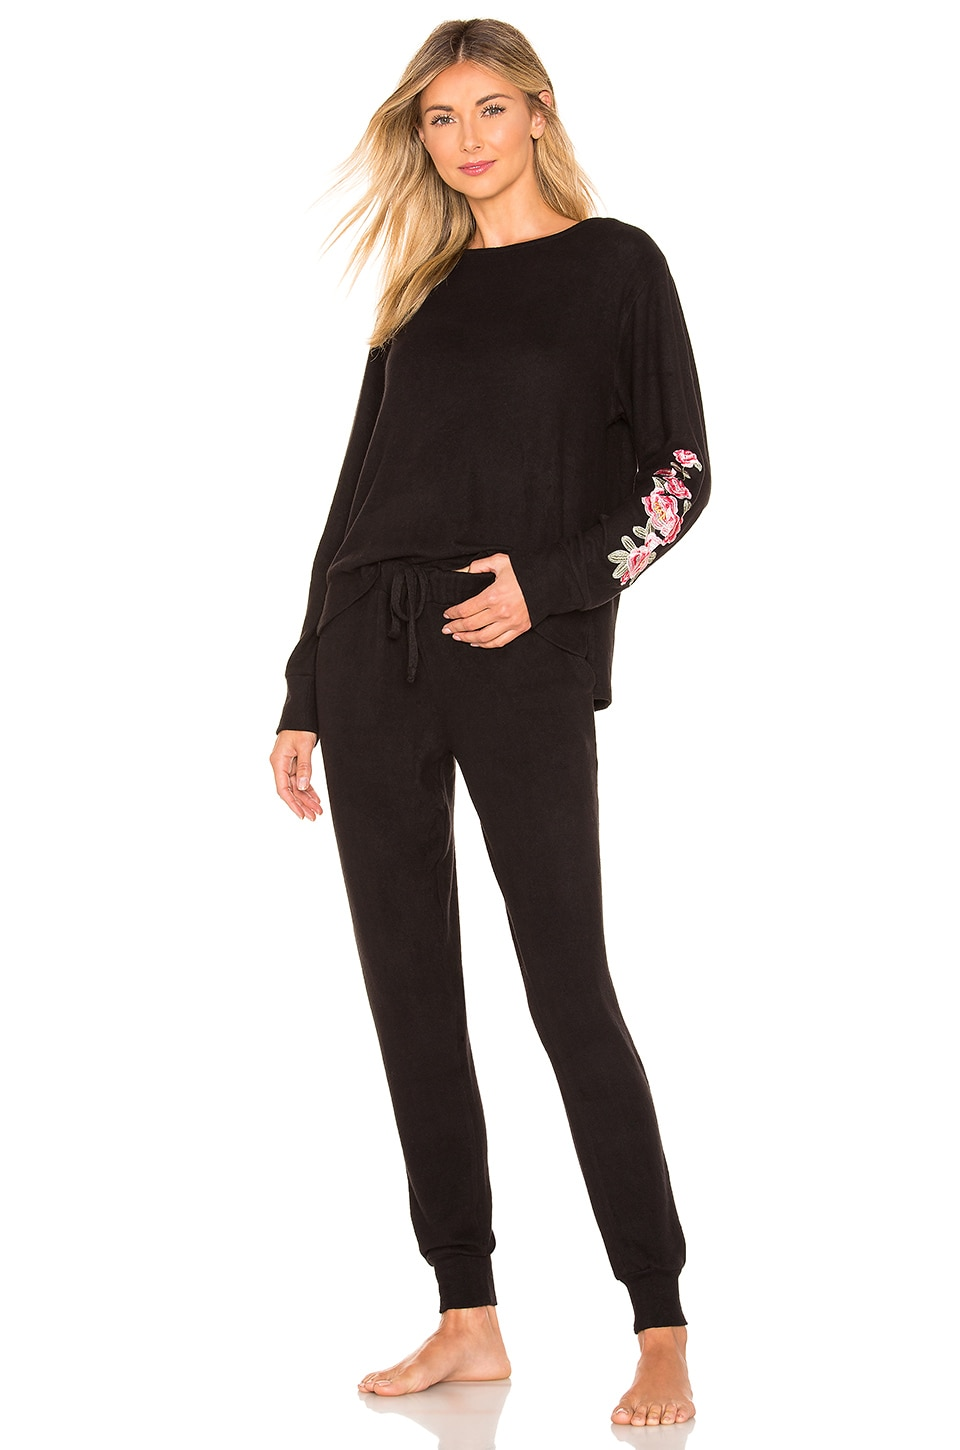 Flora Nikrooz Melrose PJ Set in Black